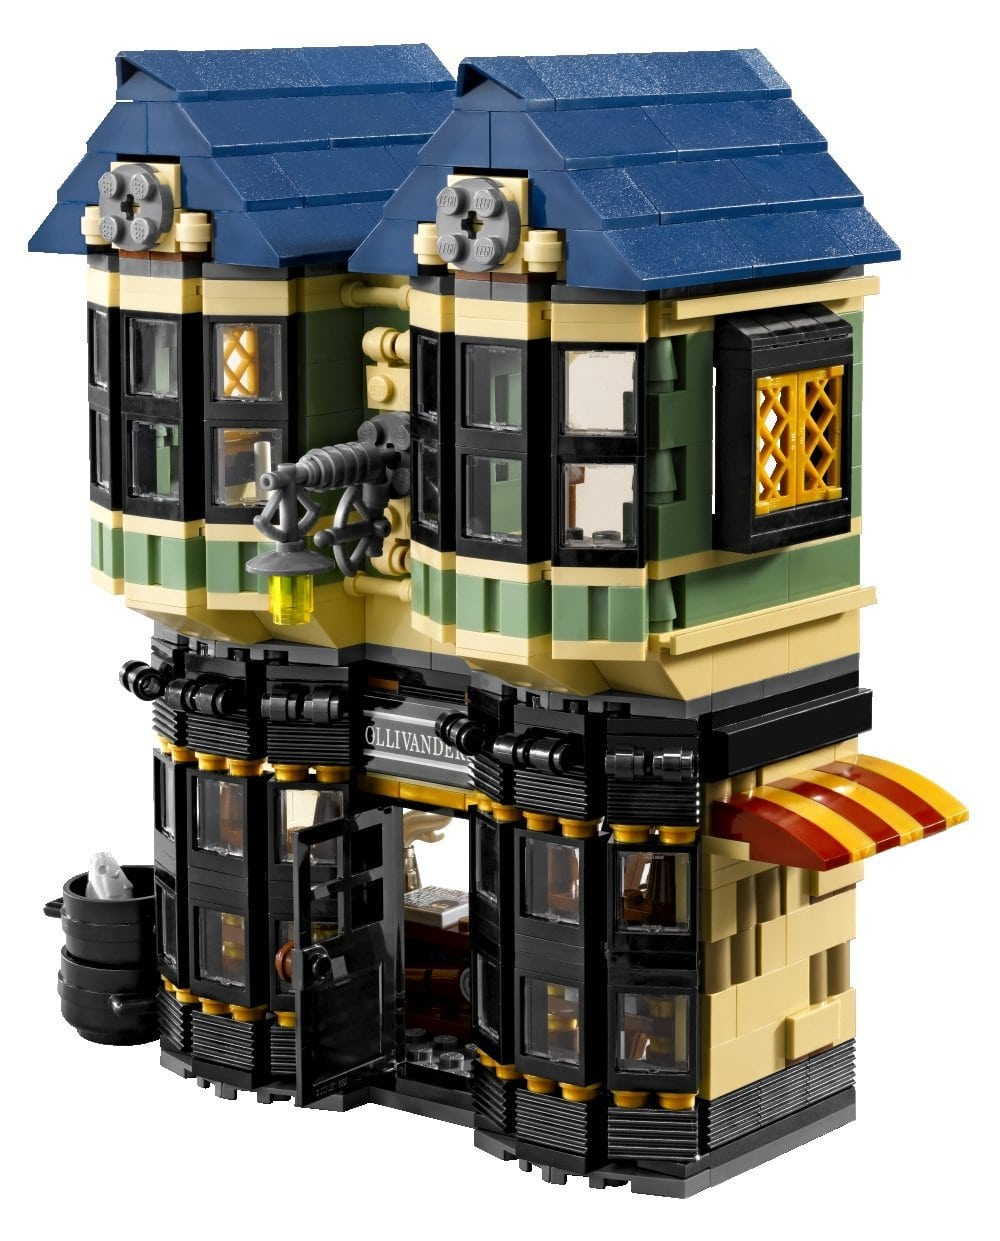 Ollivander's shop - Lego Harry Potter